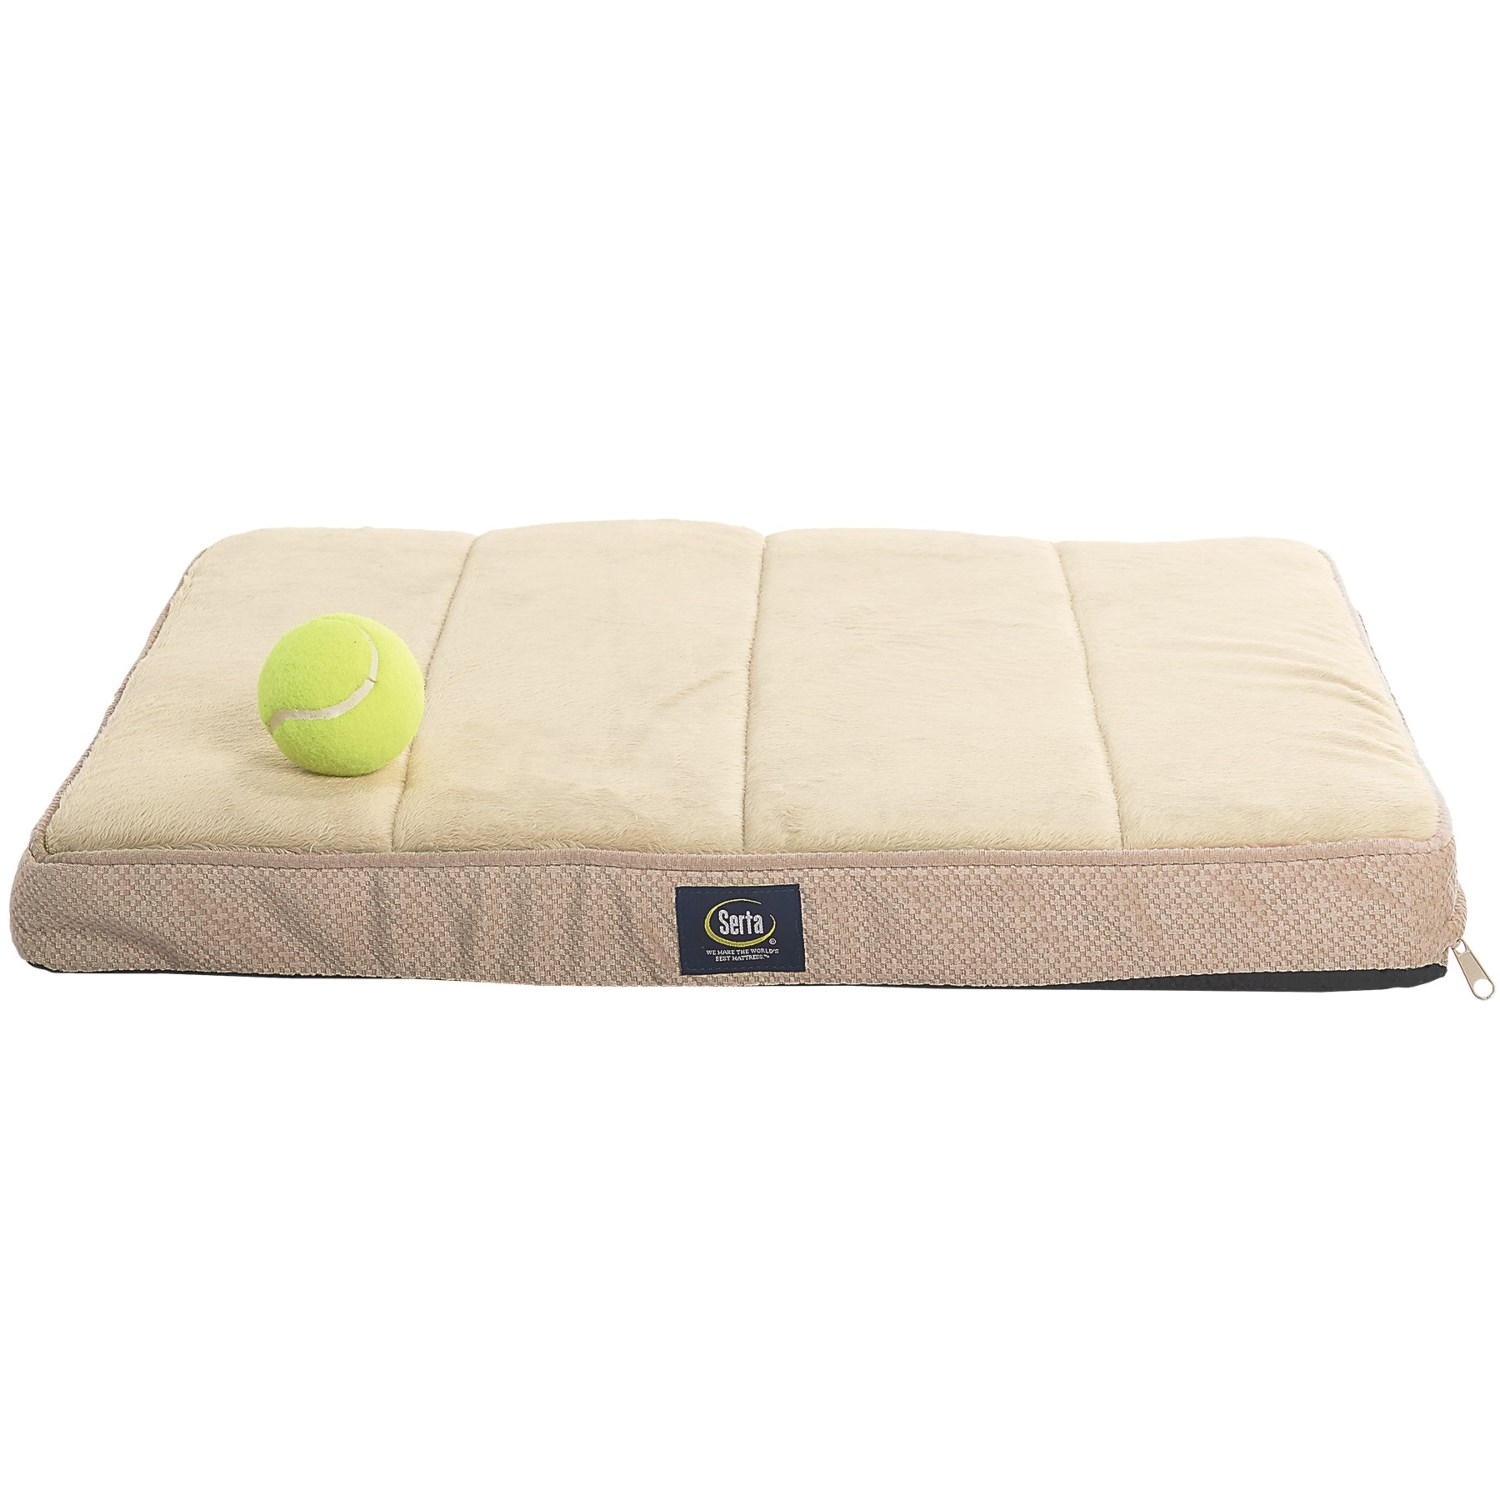 euro queen top mattress rc jsp traymoor furniture serta mattresses willey rcwilley view store